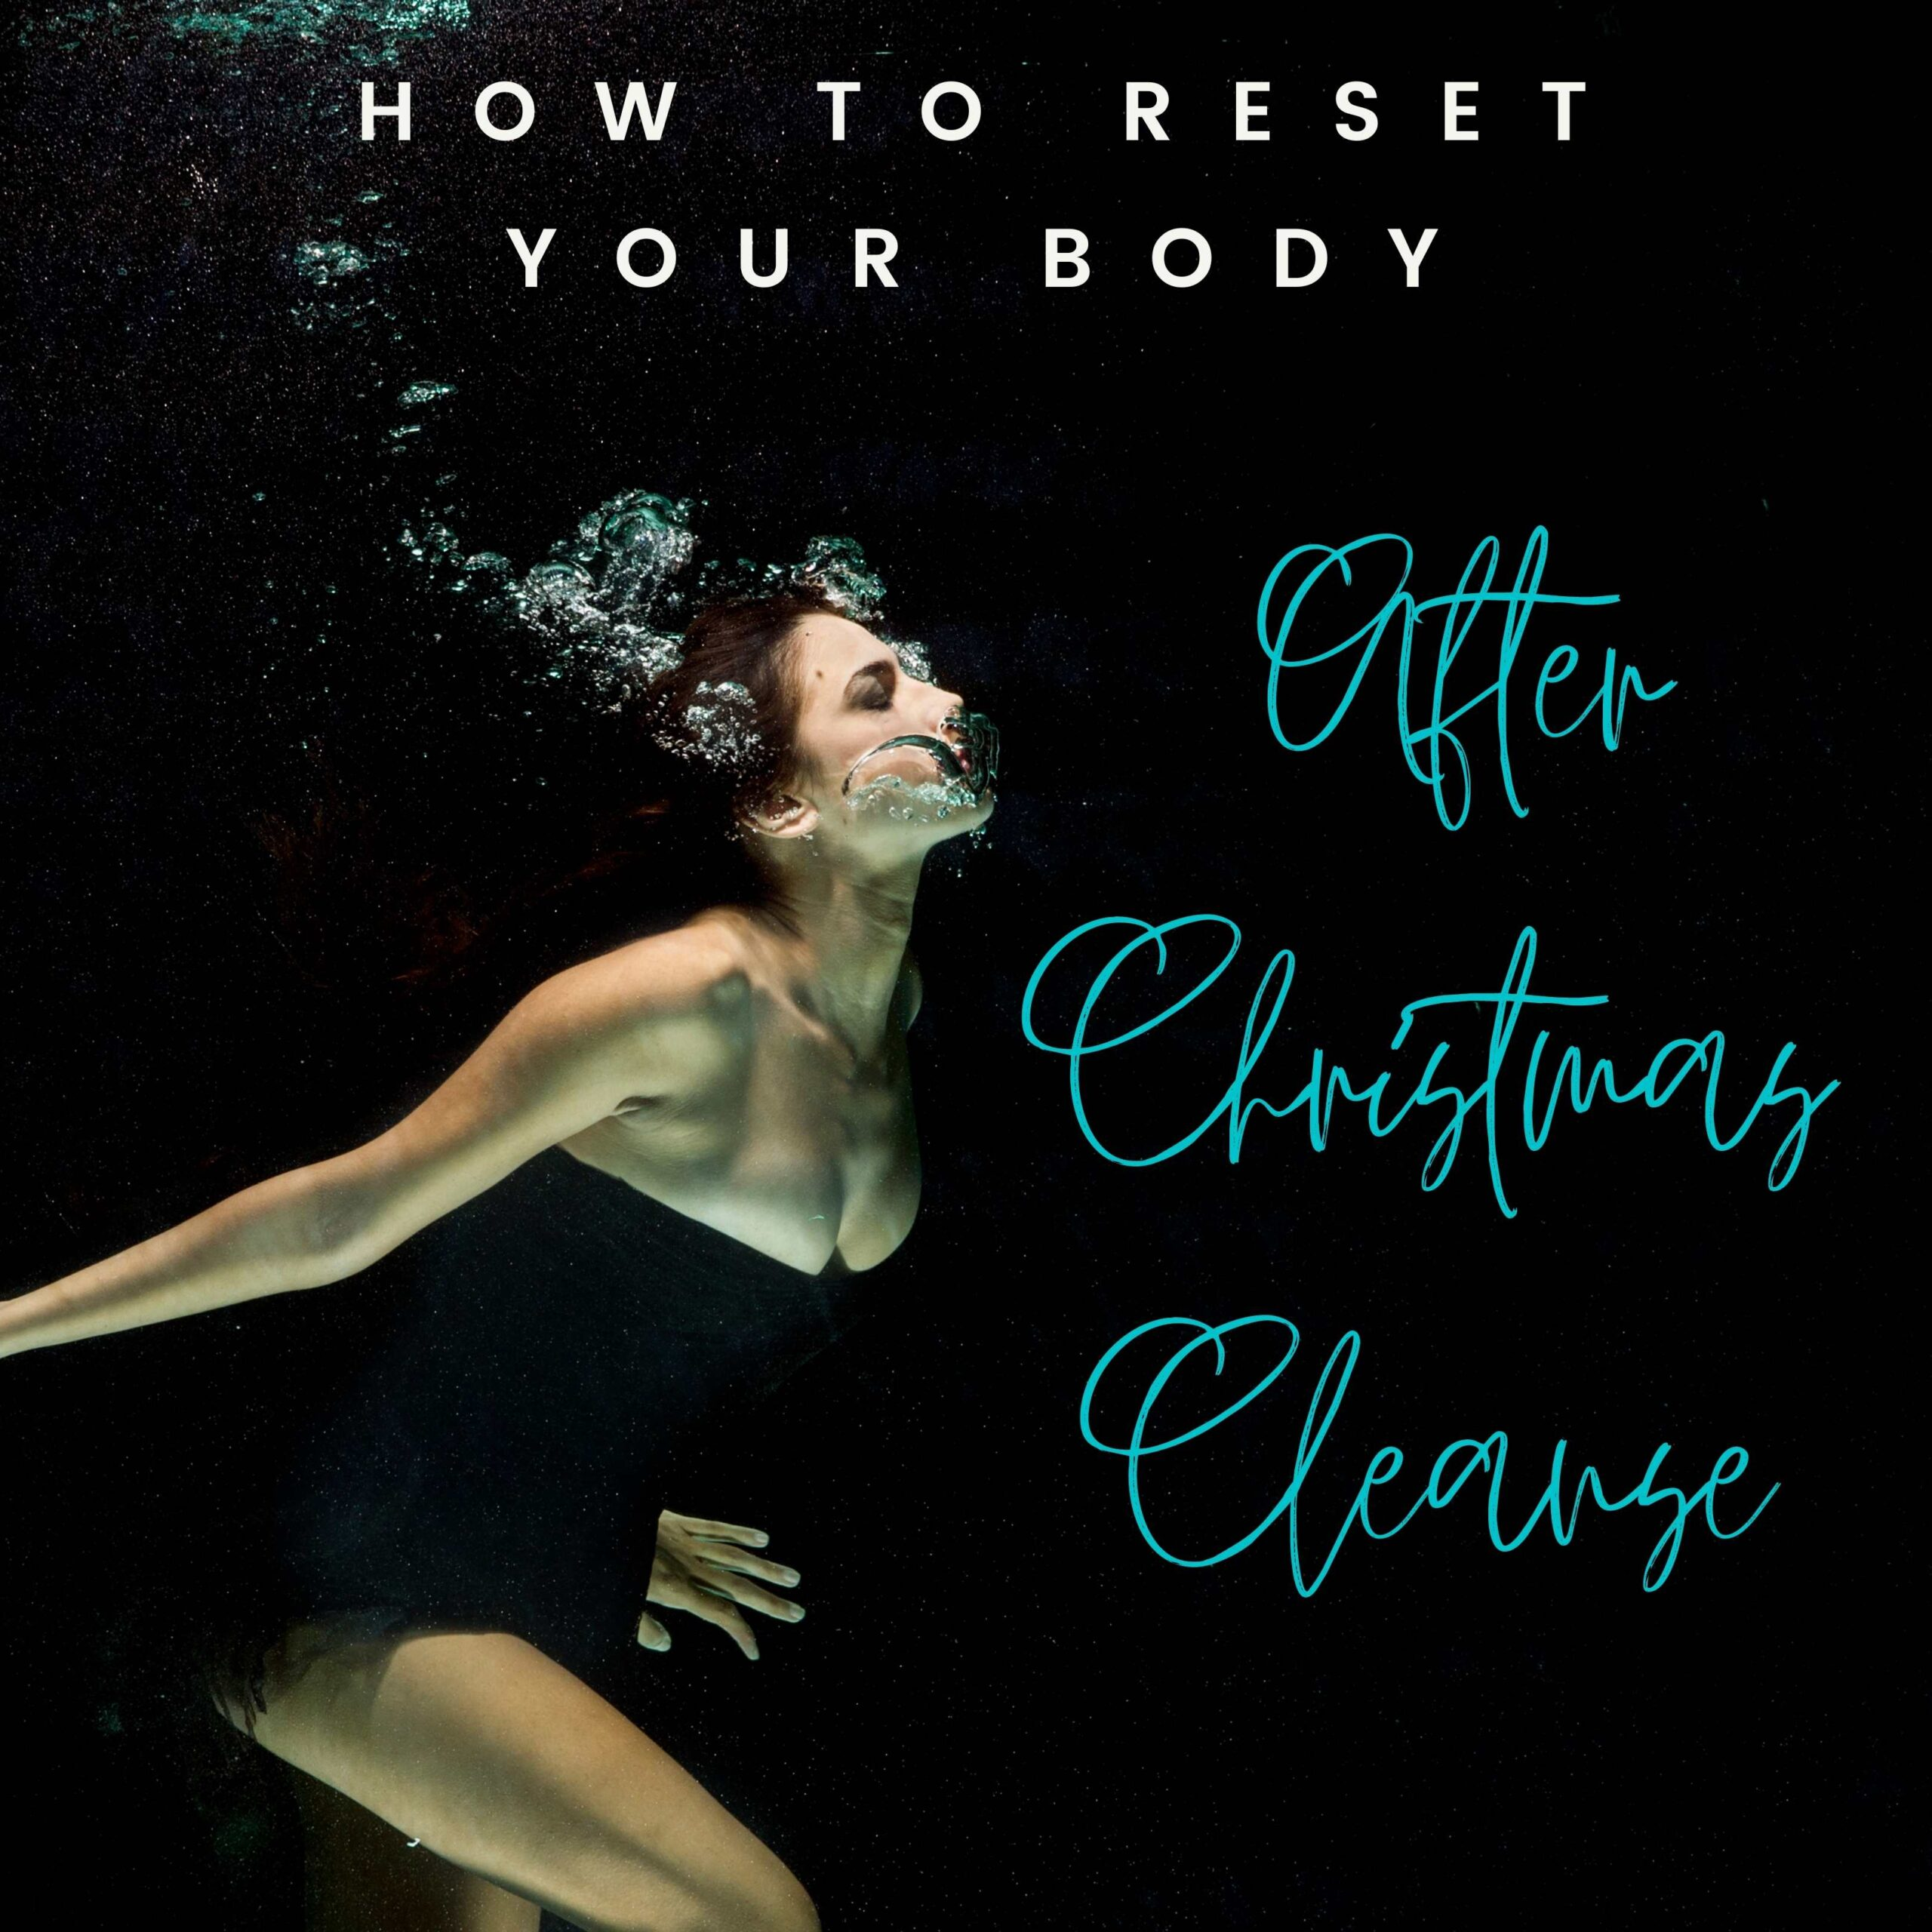 After Christmas Cleanse